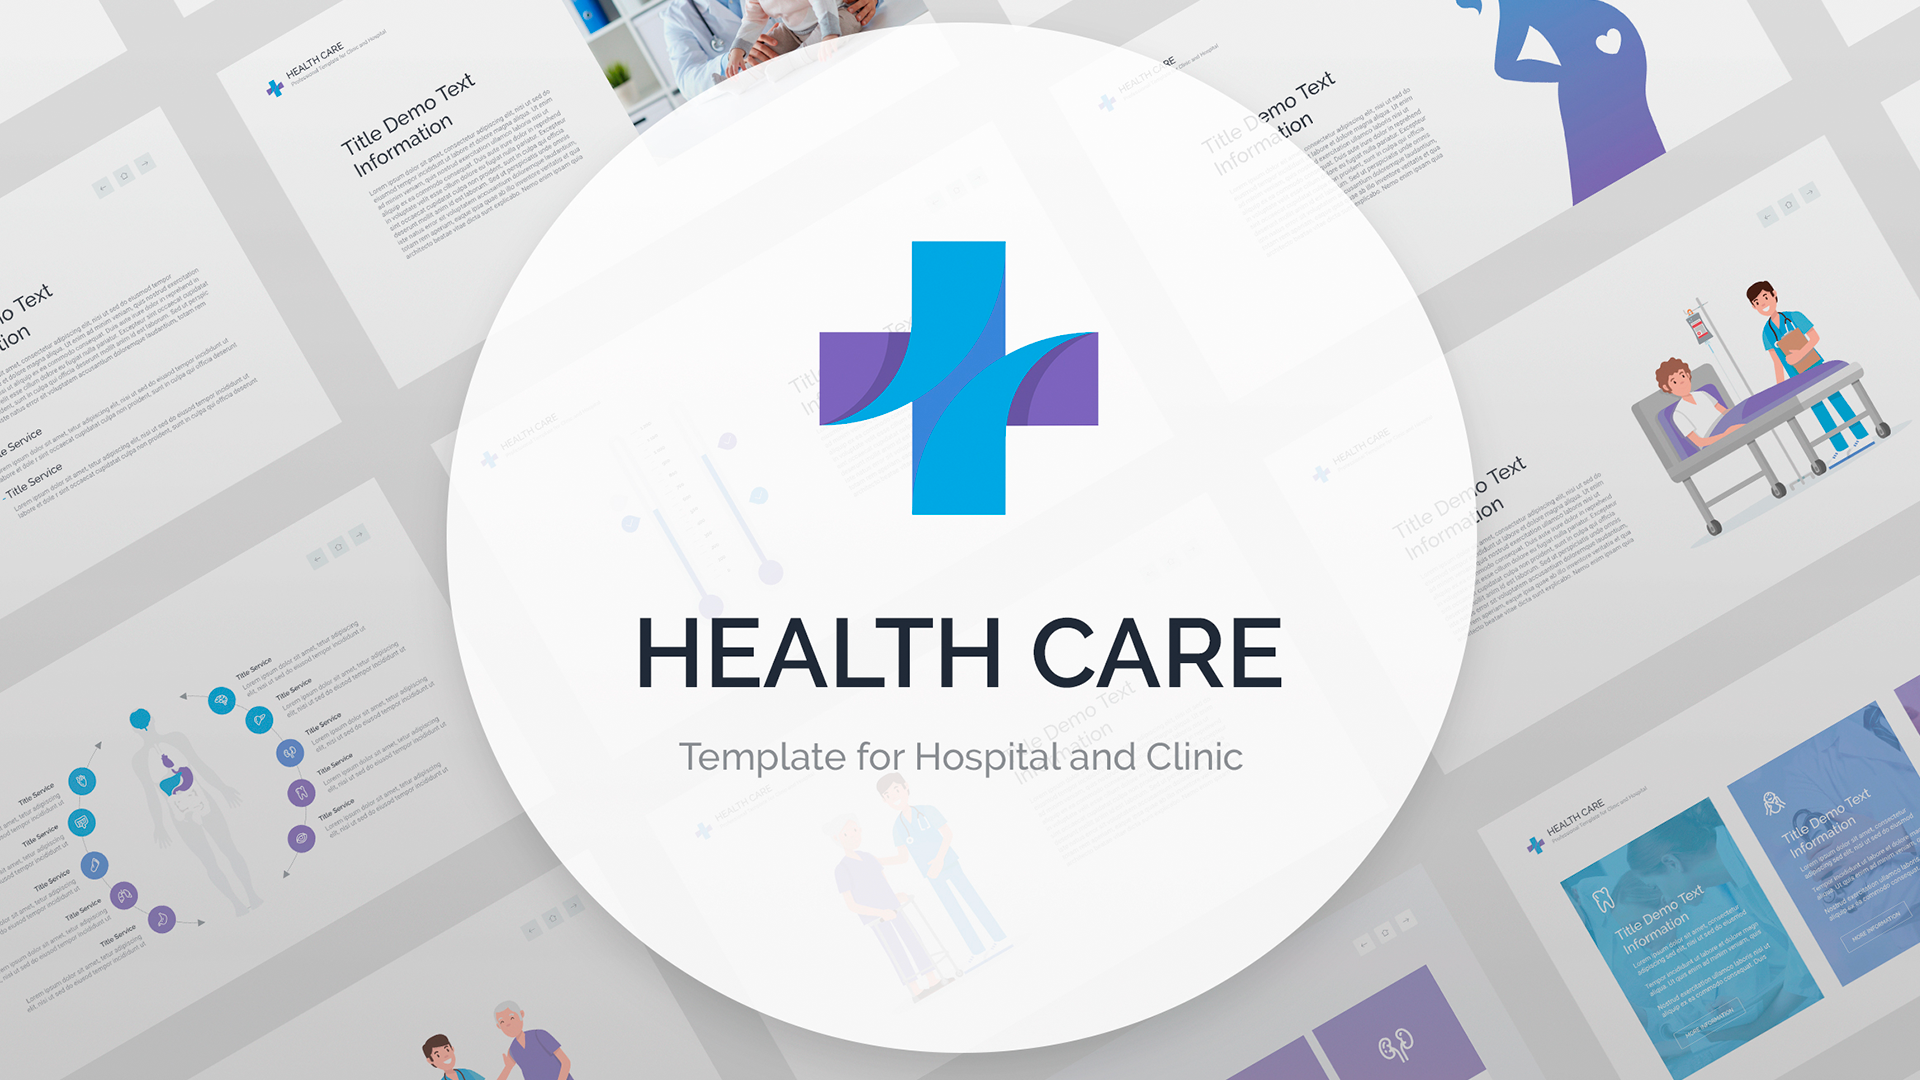 Health Care Delivery Systems presentation template